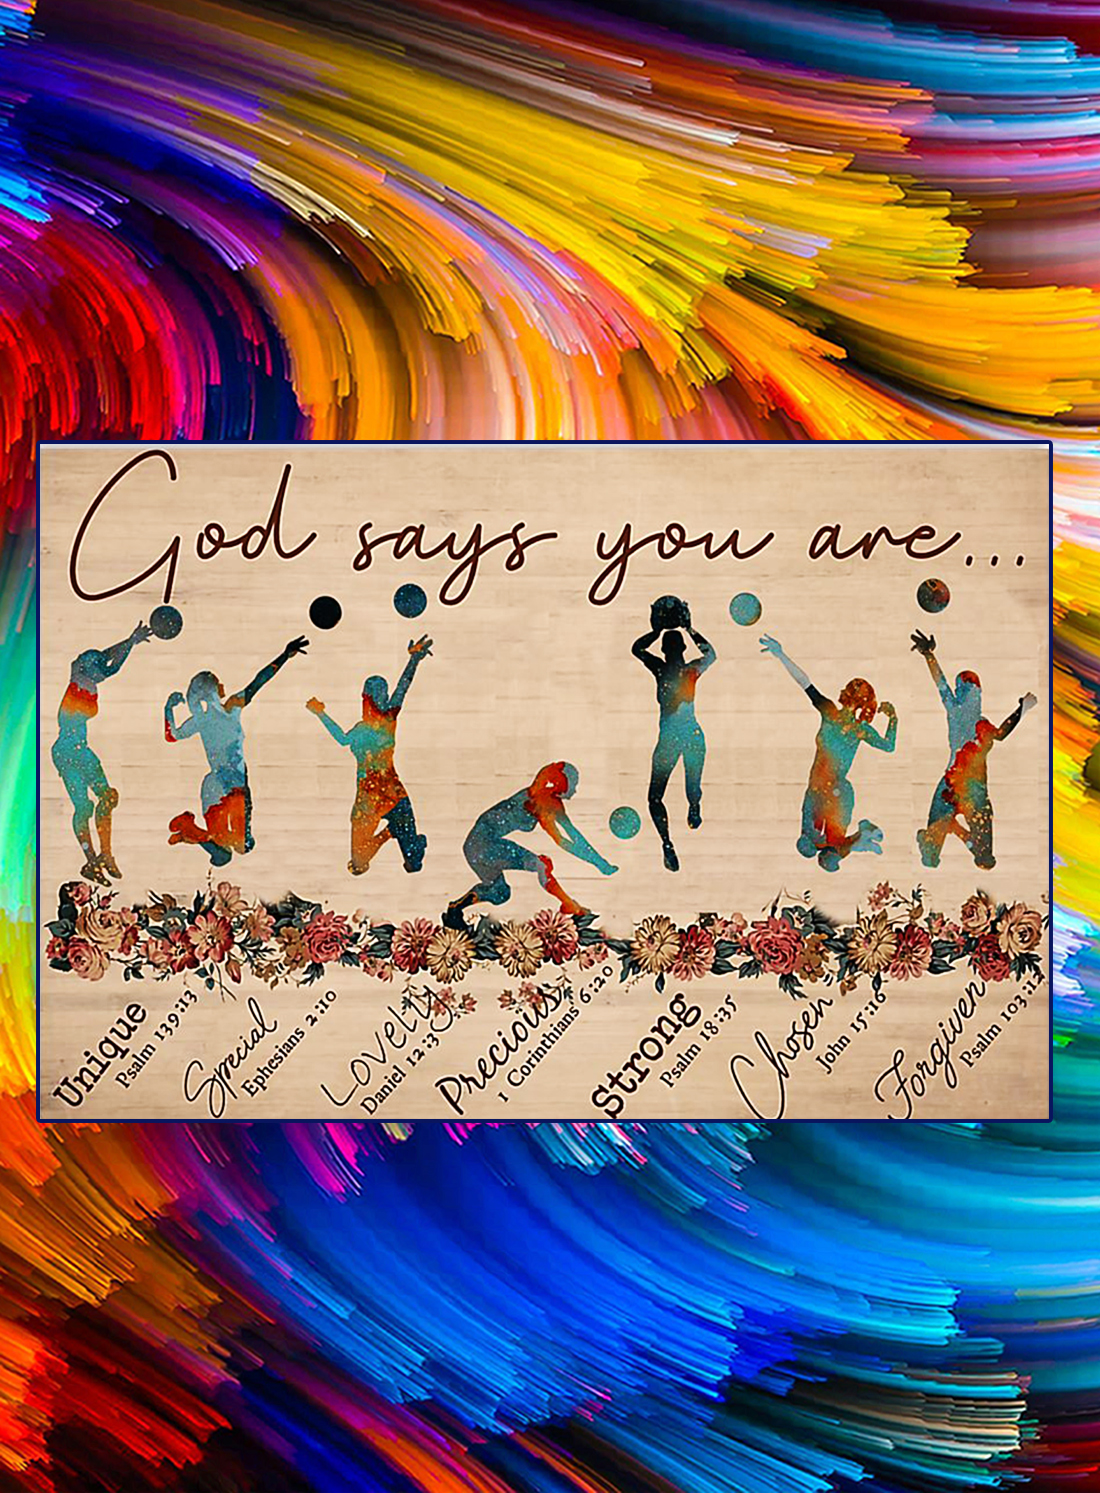 God says you are voleyball poster - A4